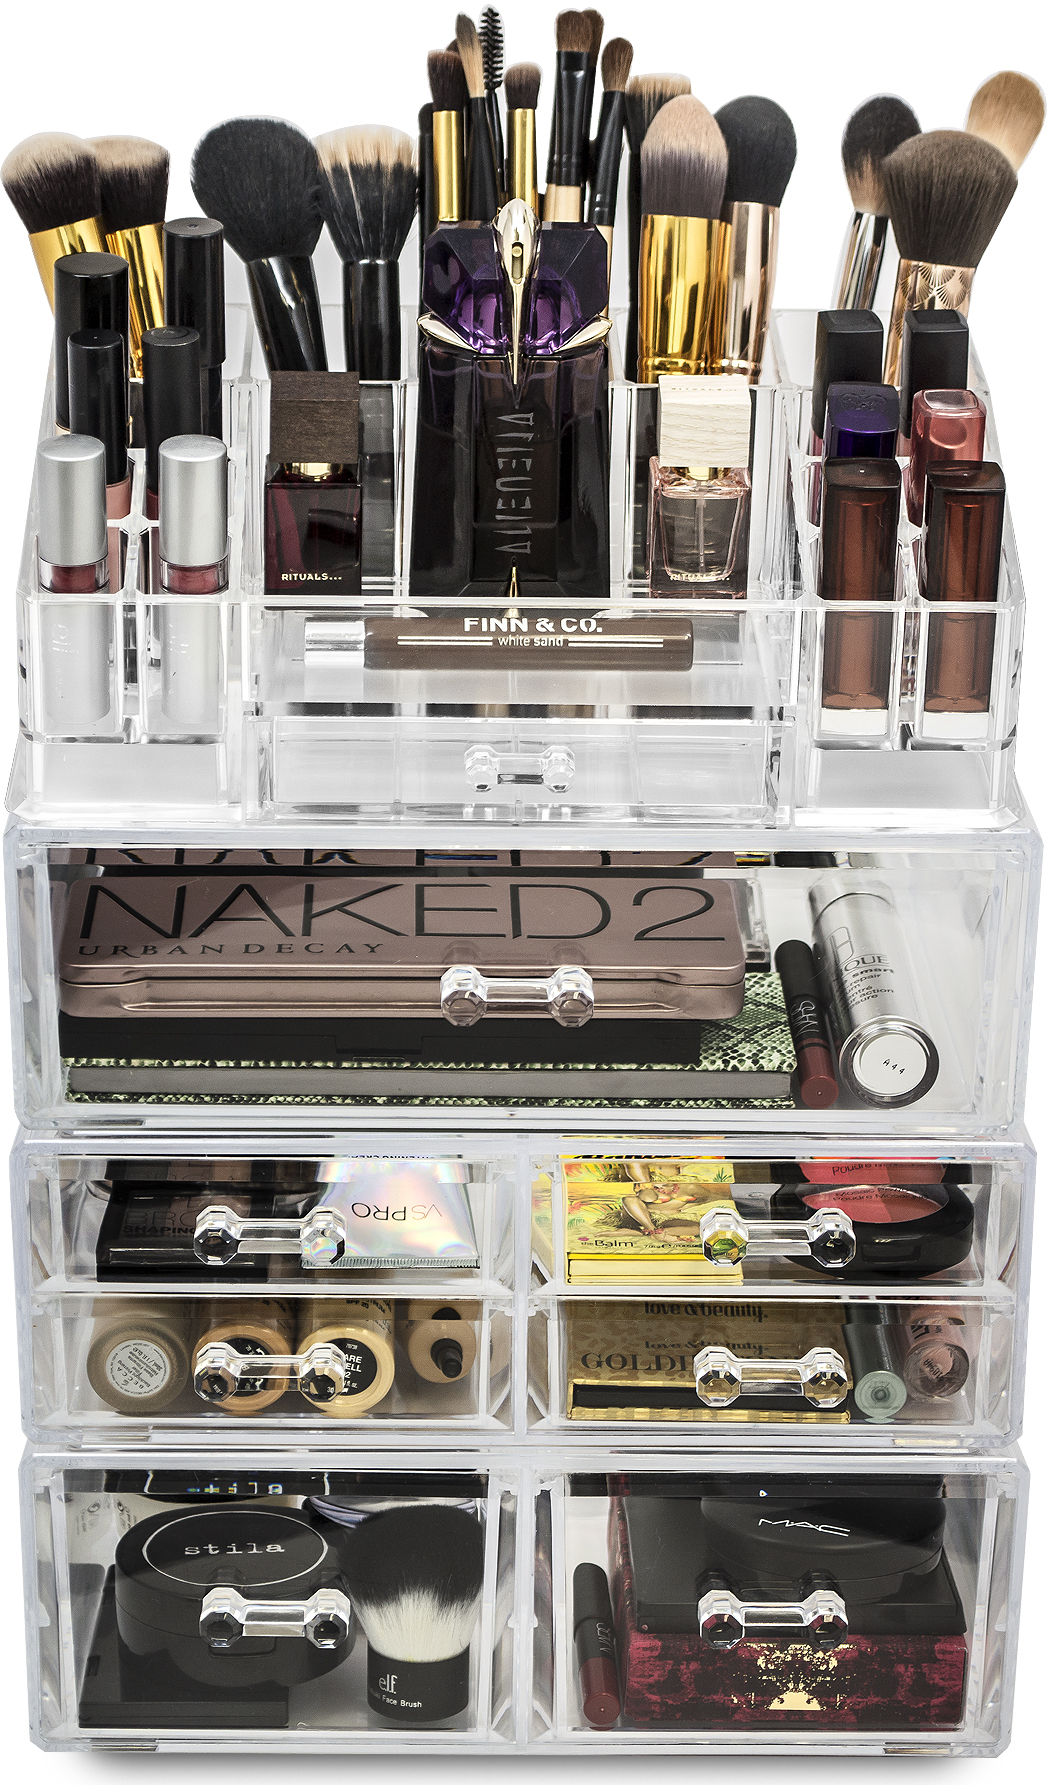 Sorbus Acrylic Cosmetics Makeup And Jewelry Storage Case Display Sets    Interlocking Drawers To Create Your